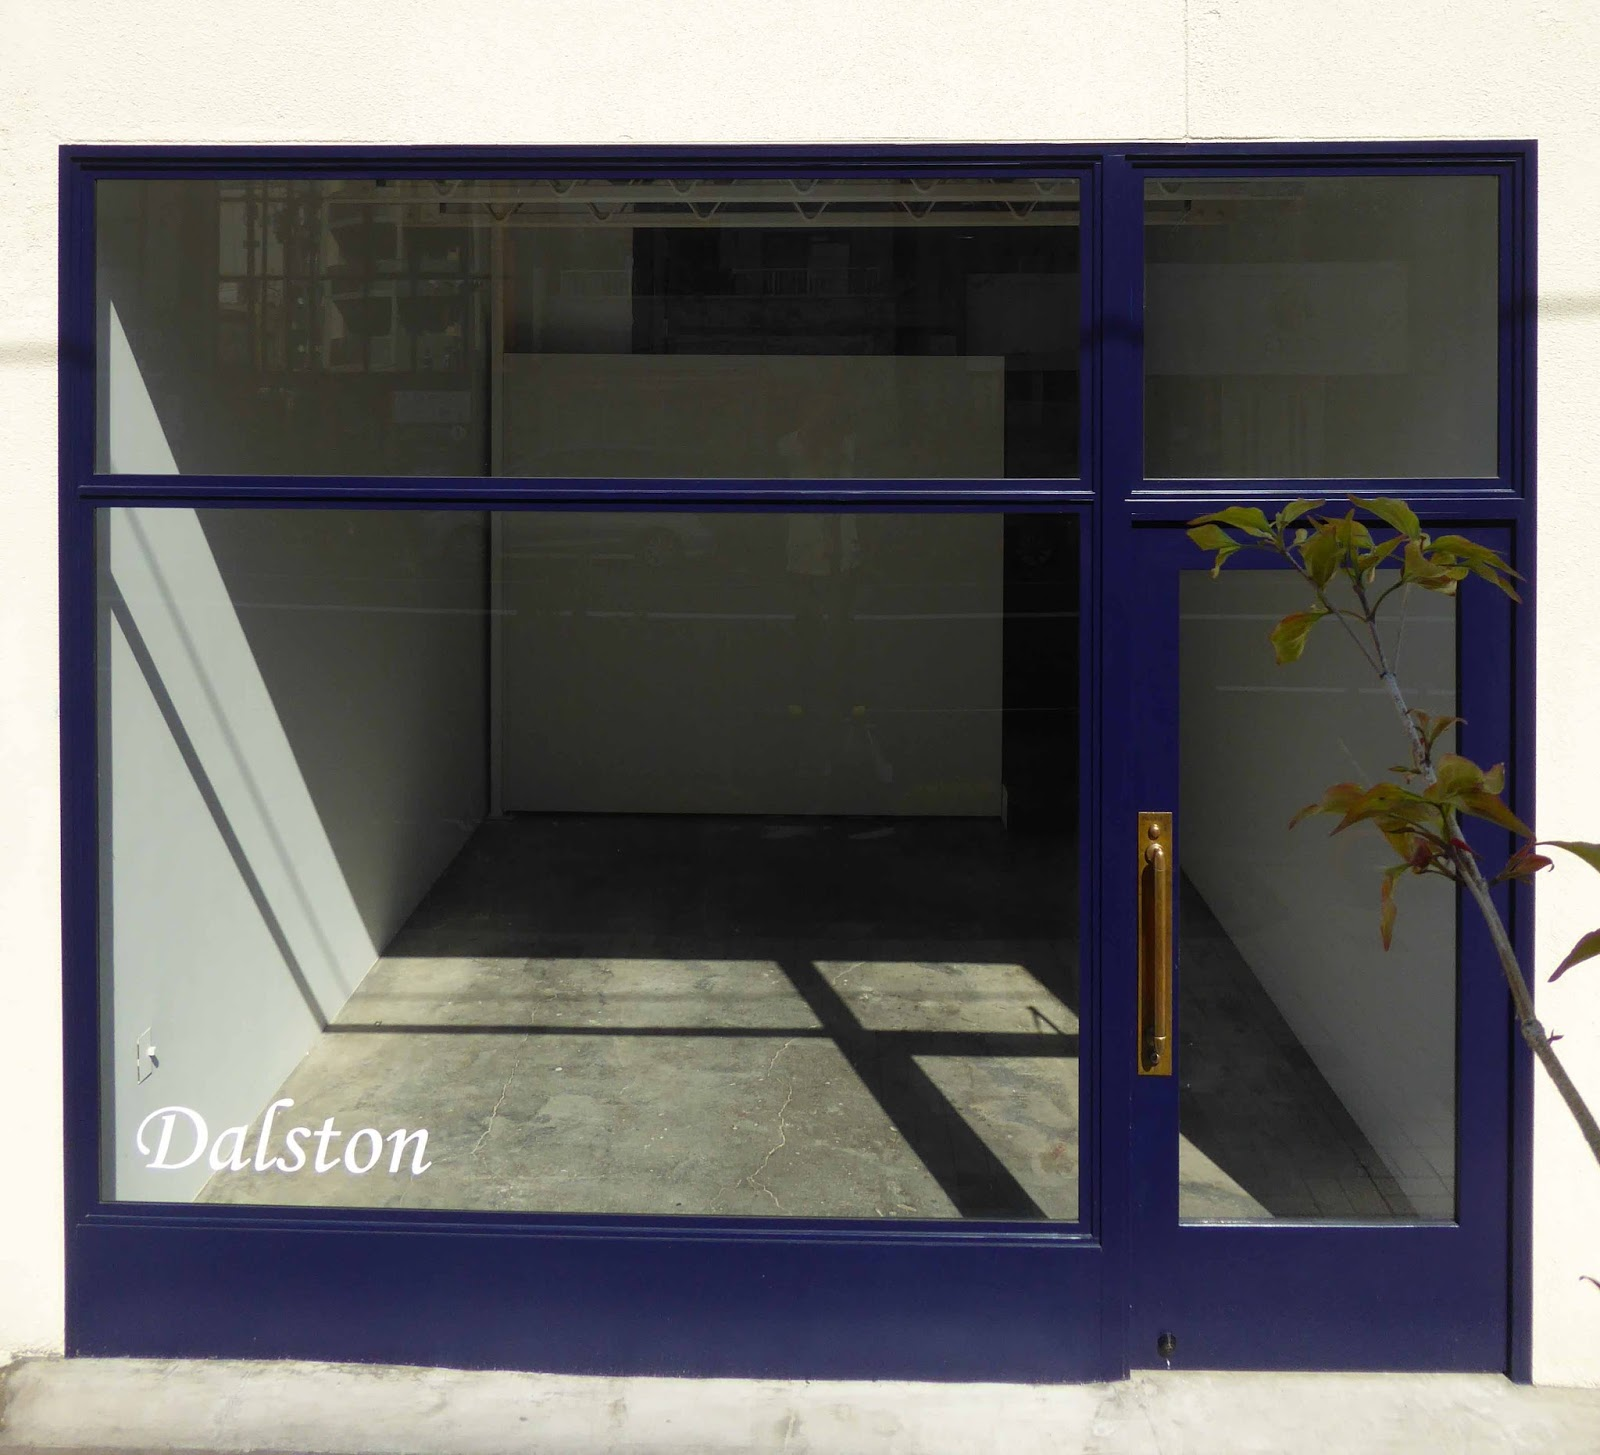 Gallery Dalstonにて